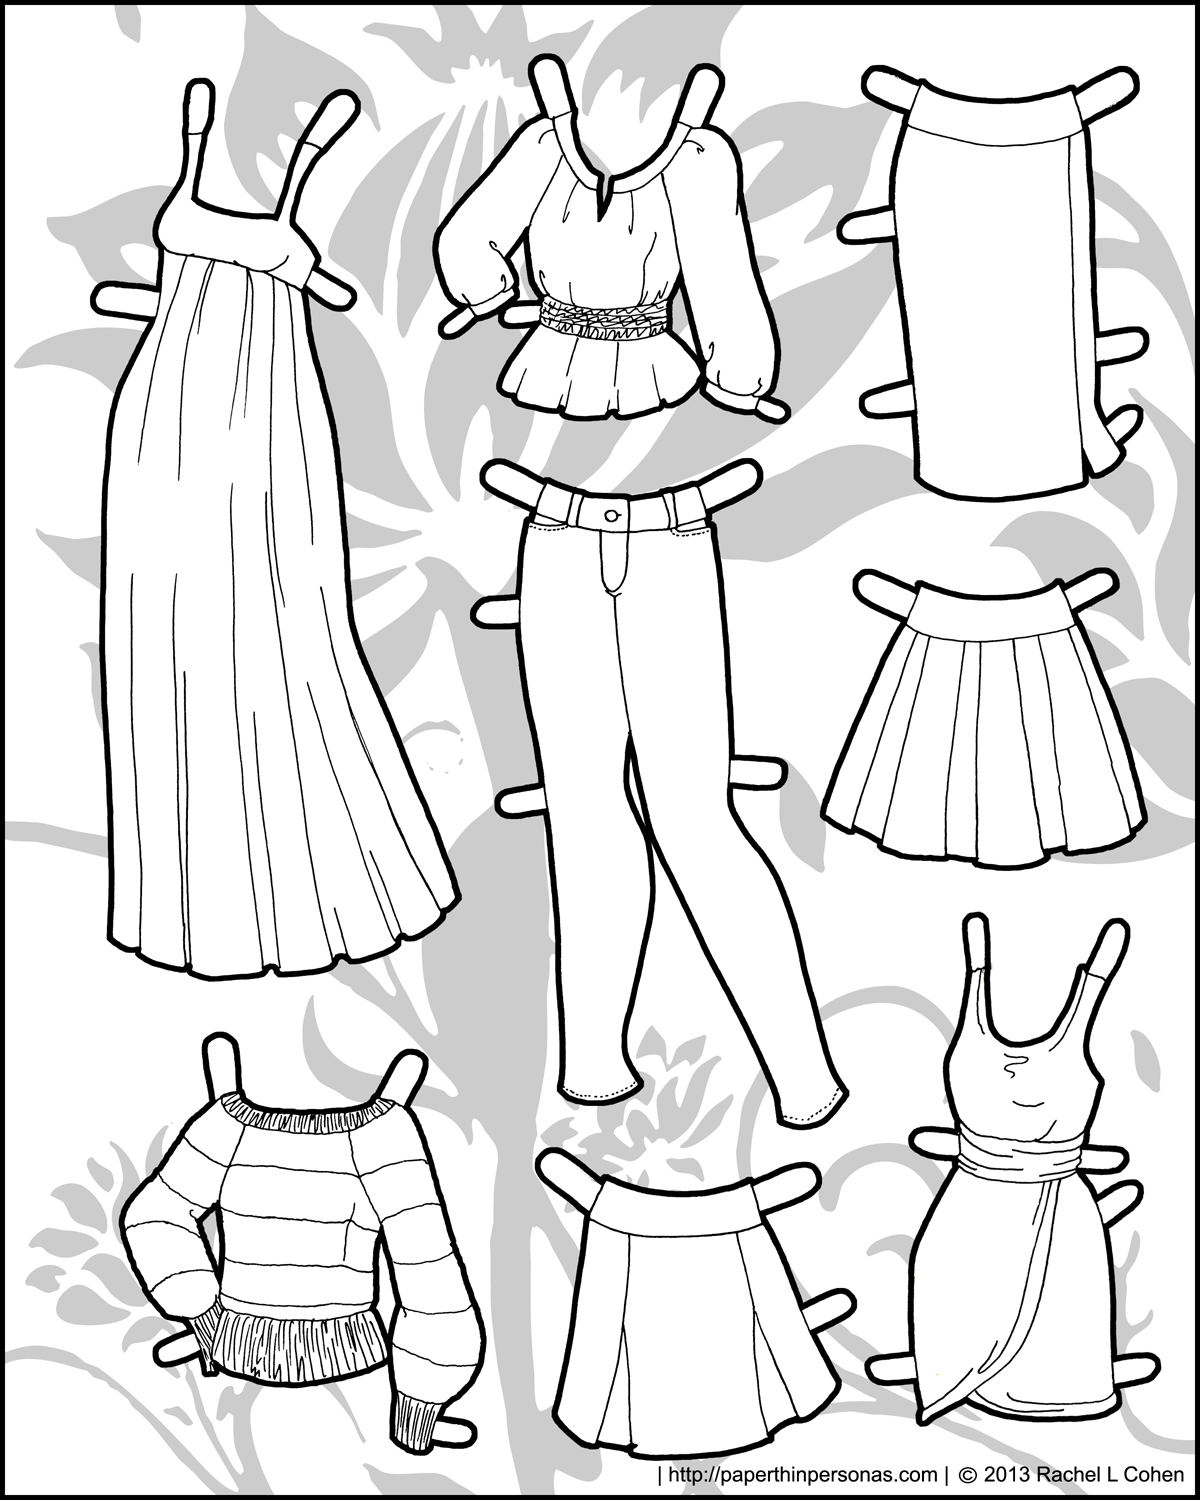 Paper doll clothes skinny jeans and peasant tops for Clothing coloring pages